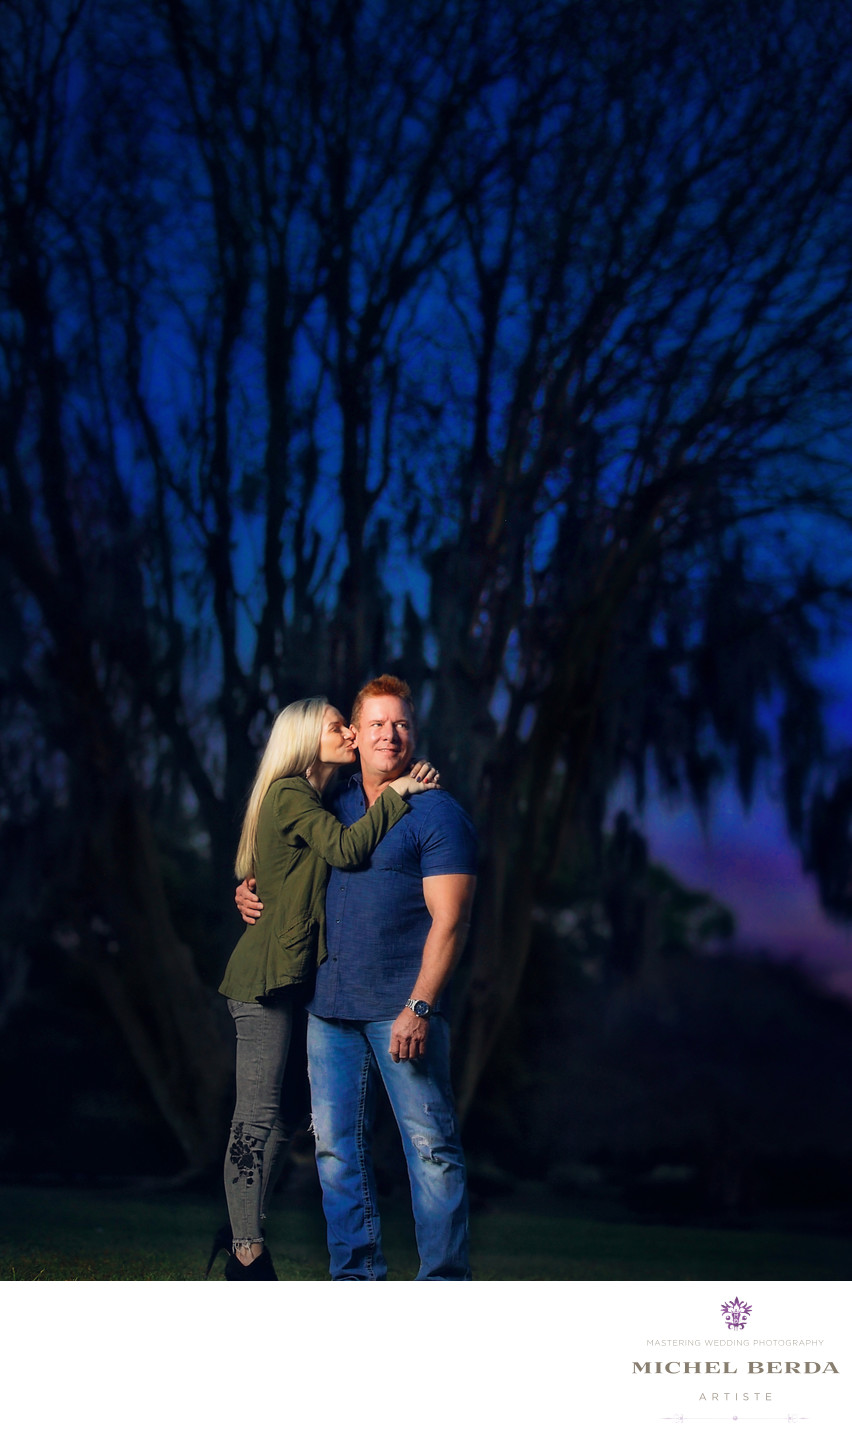 Nighttime Engagement Photos Charleston SC.